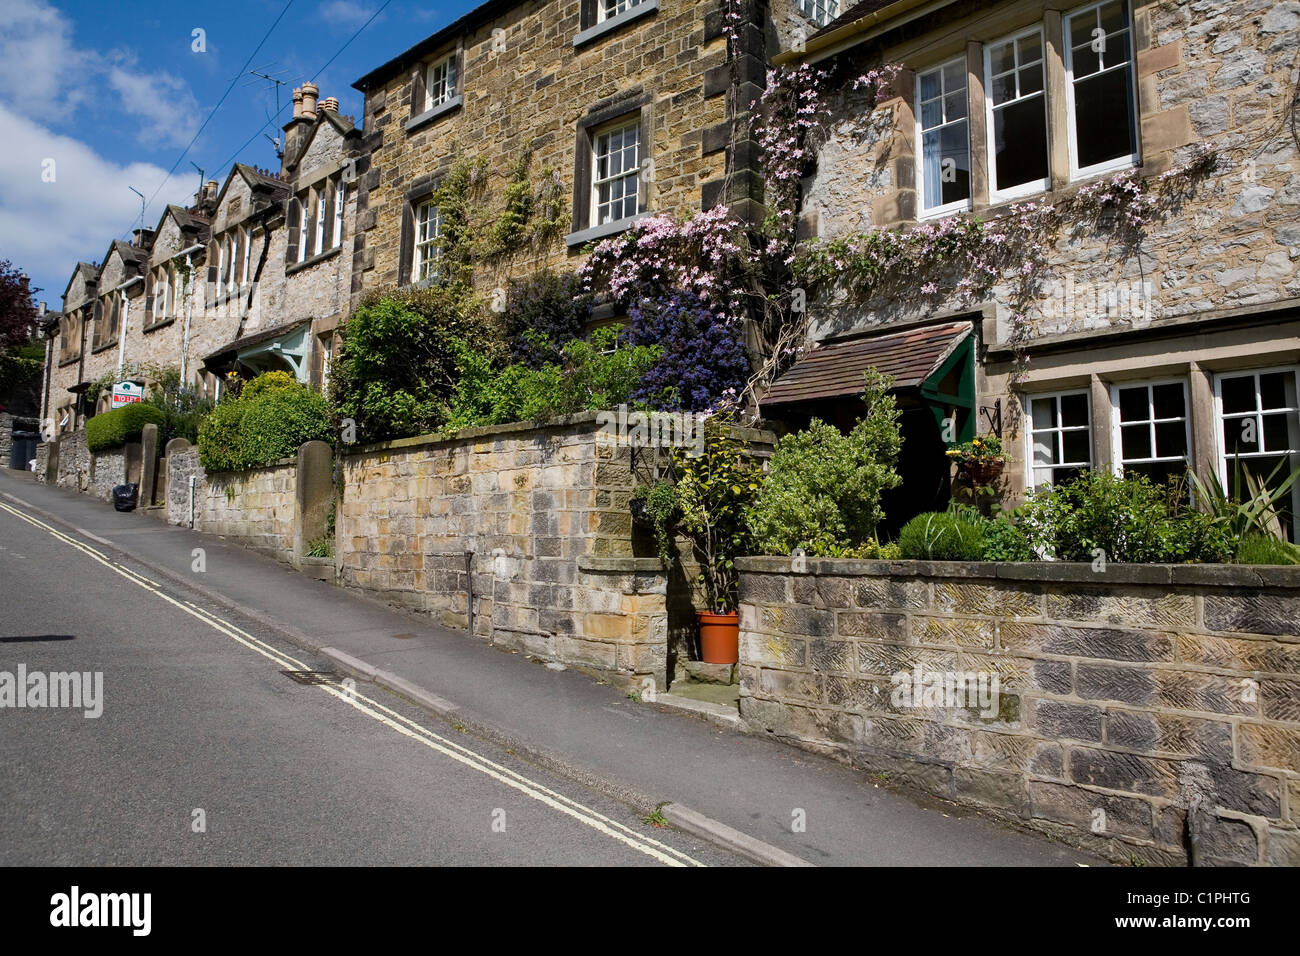 England, Derbyshire, Bakewell, terrace of stone houses on steep road - Stock Image